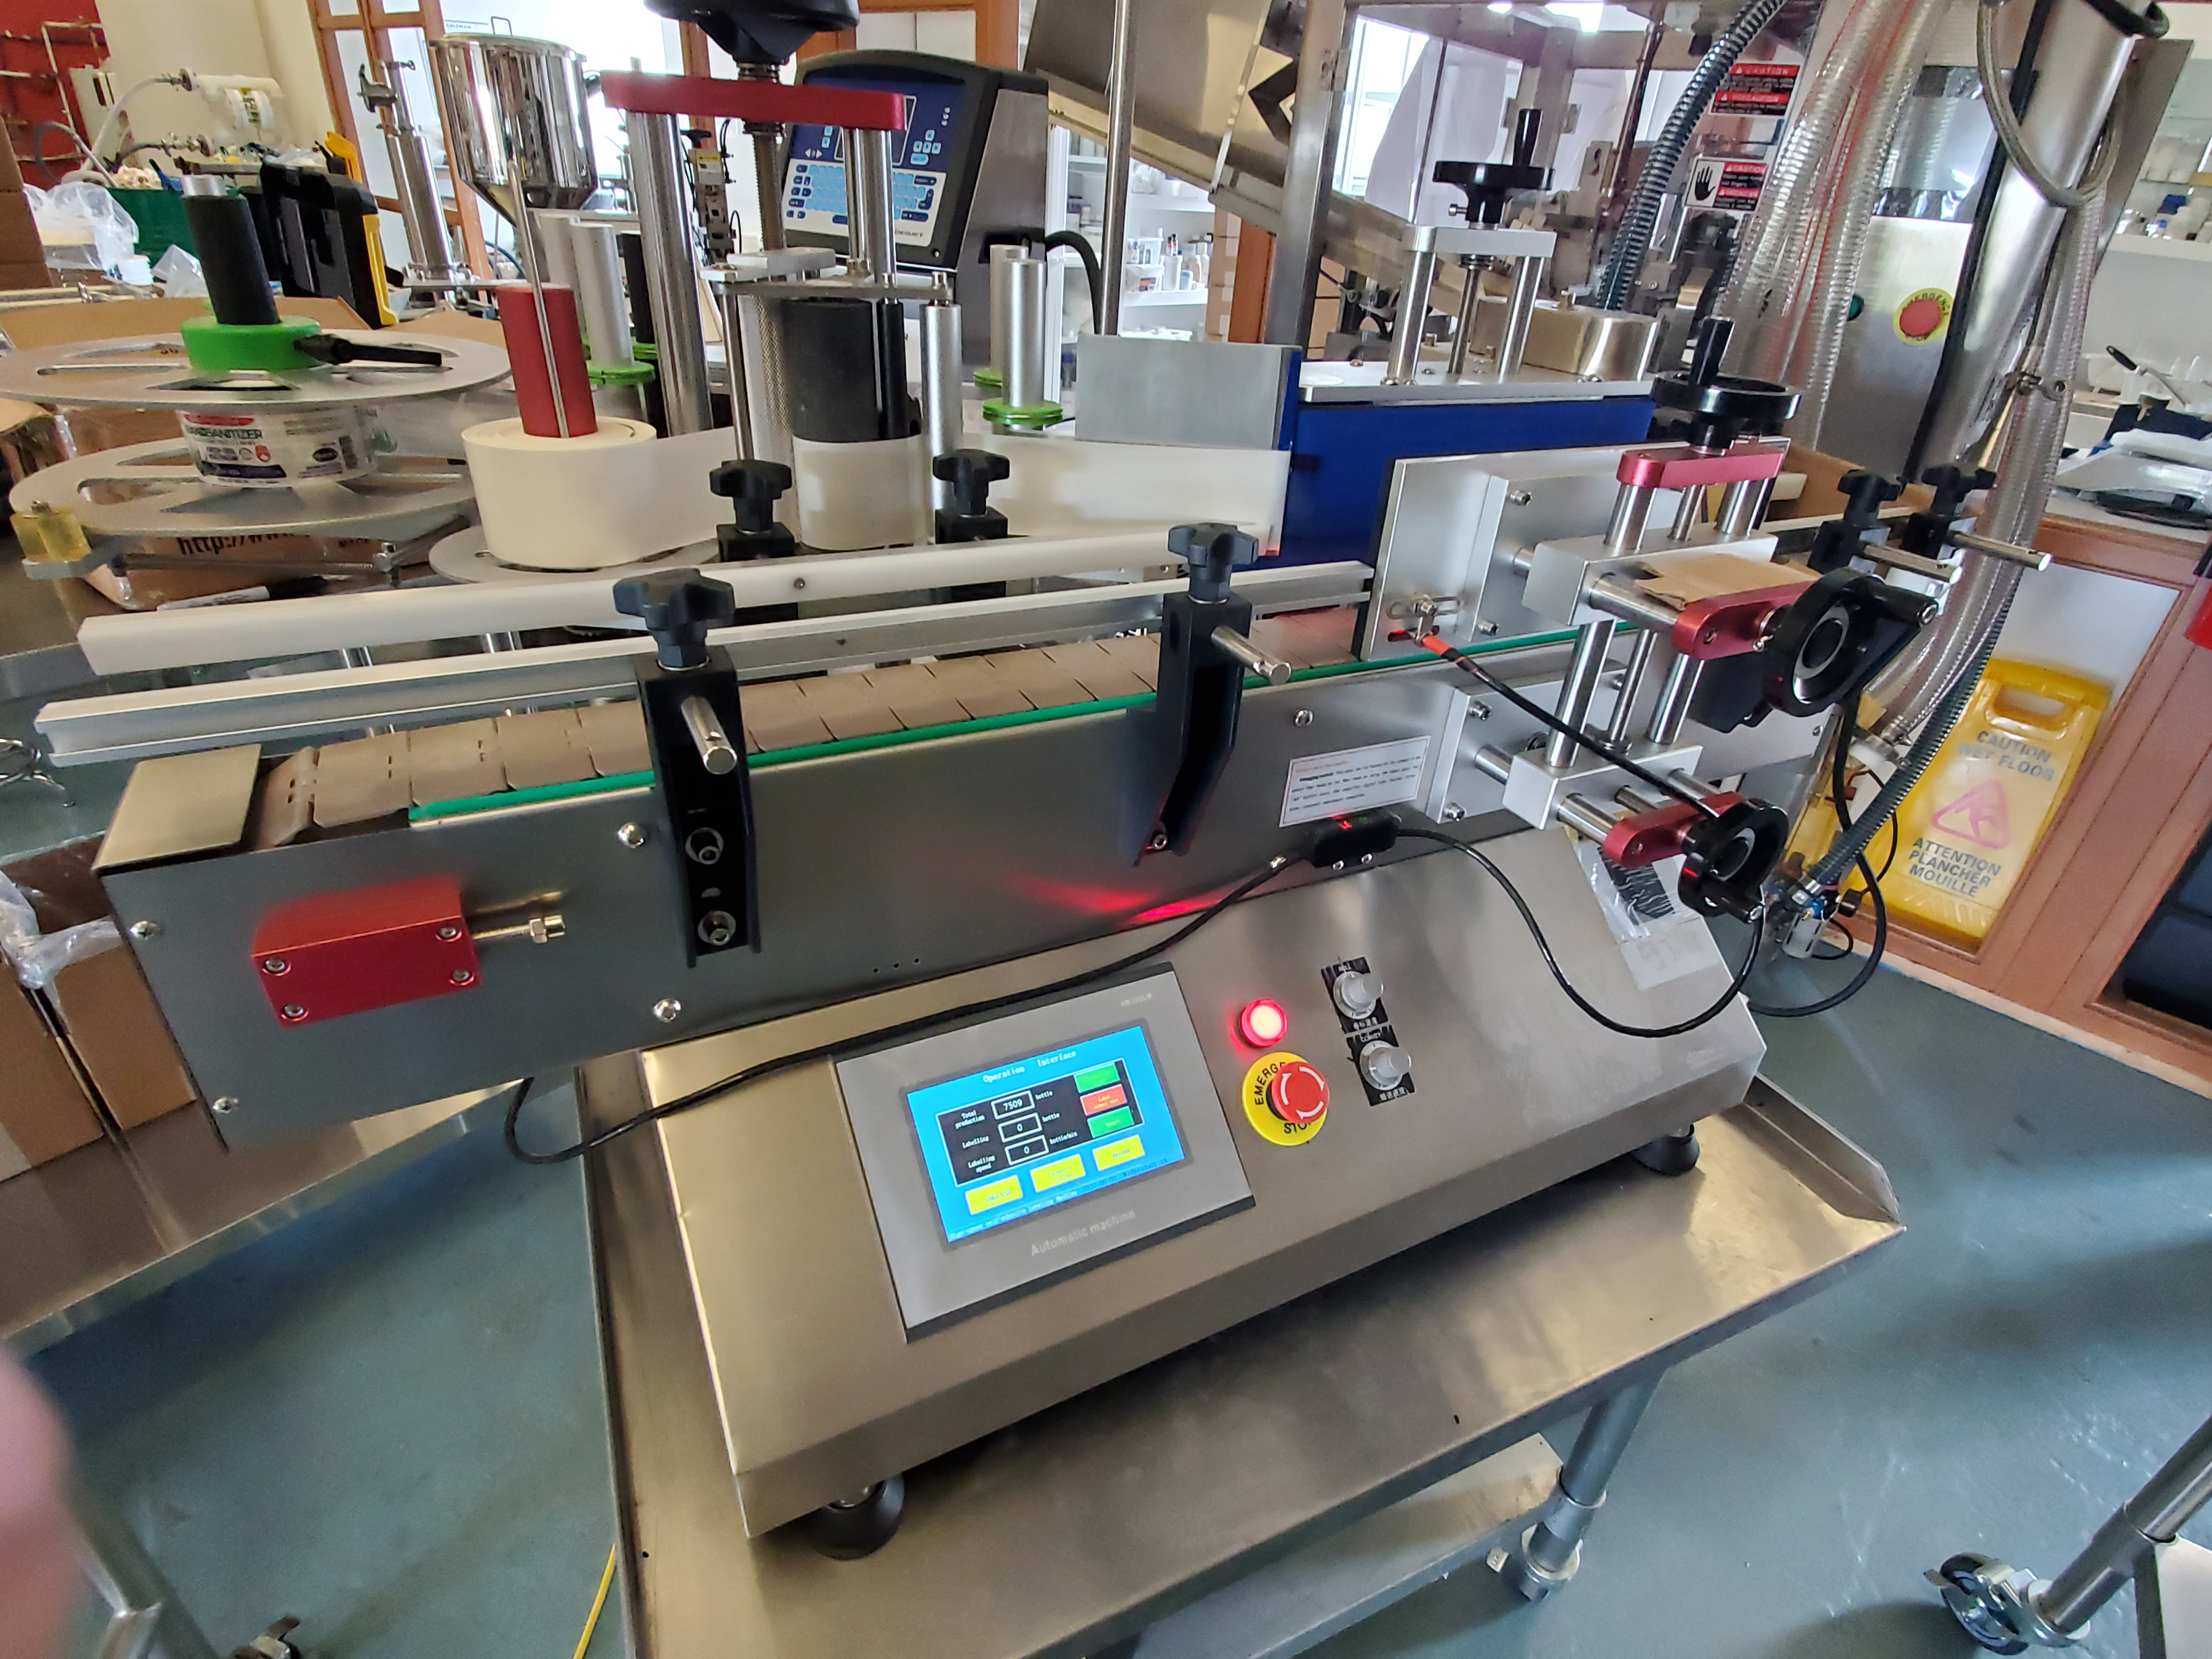 AM-300LM High Speed Pressure Sensitive wrap around labeler - Table Top Model